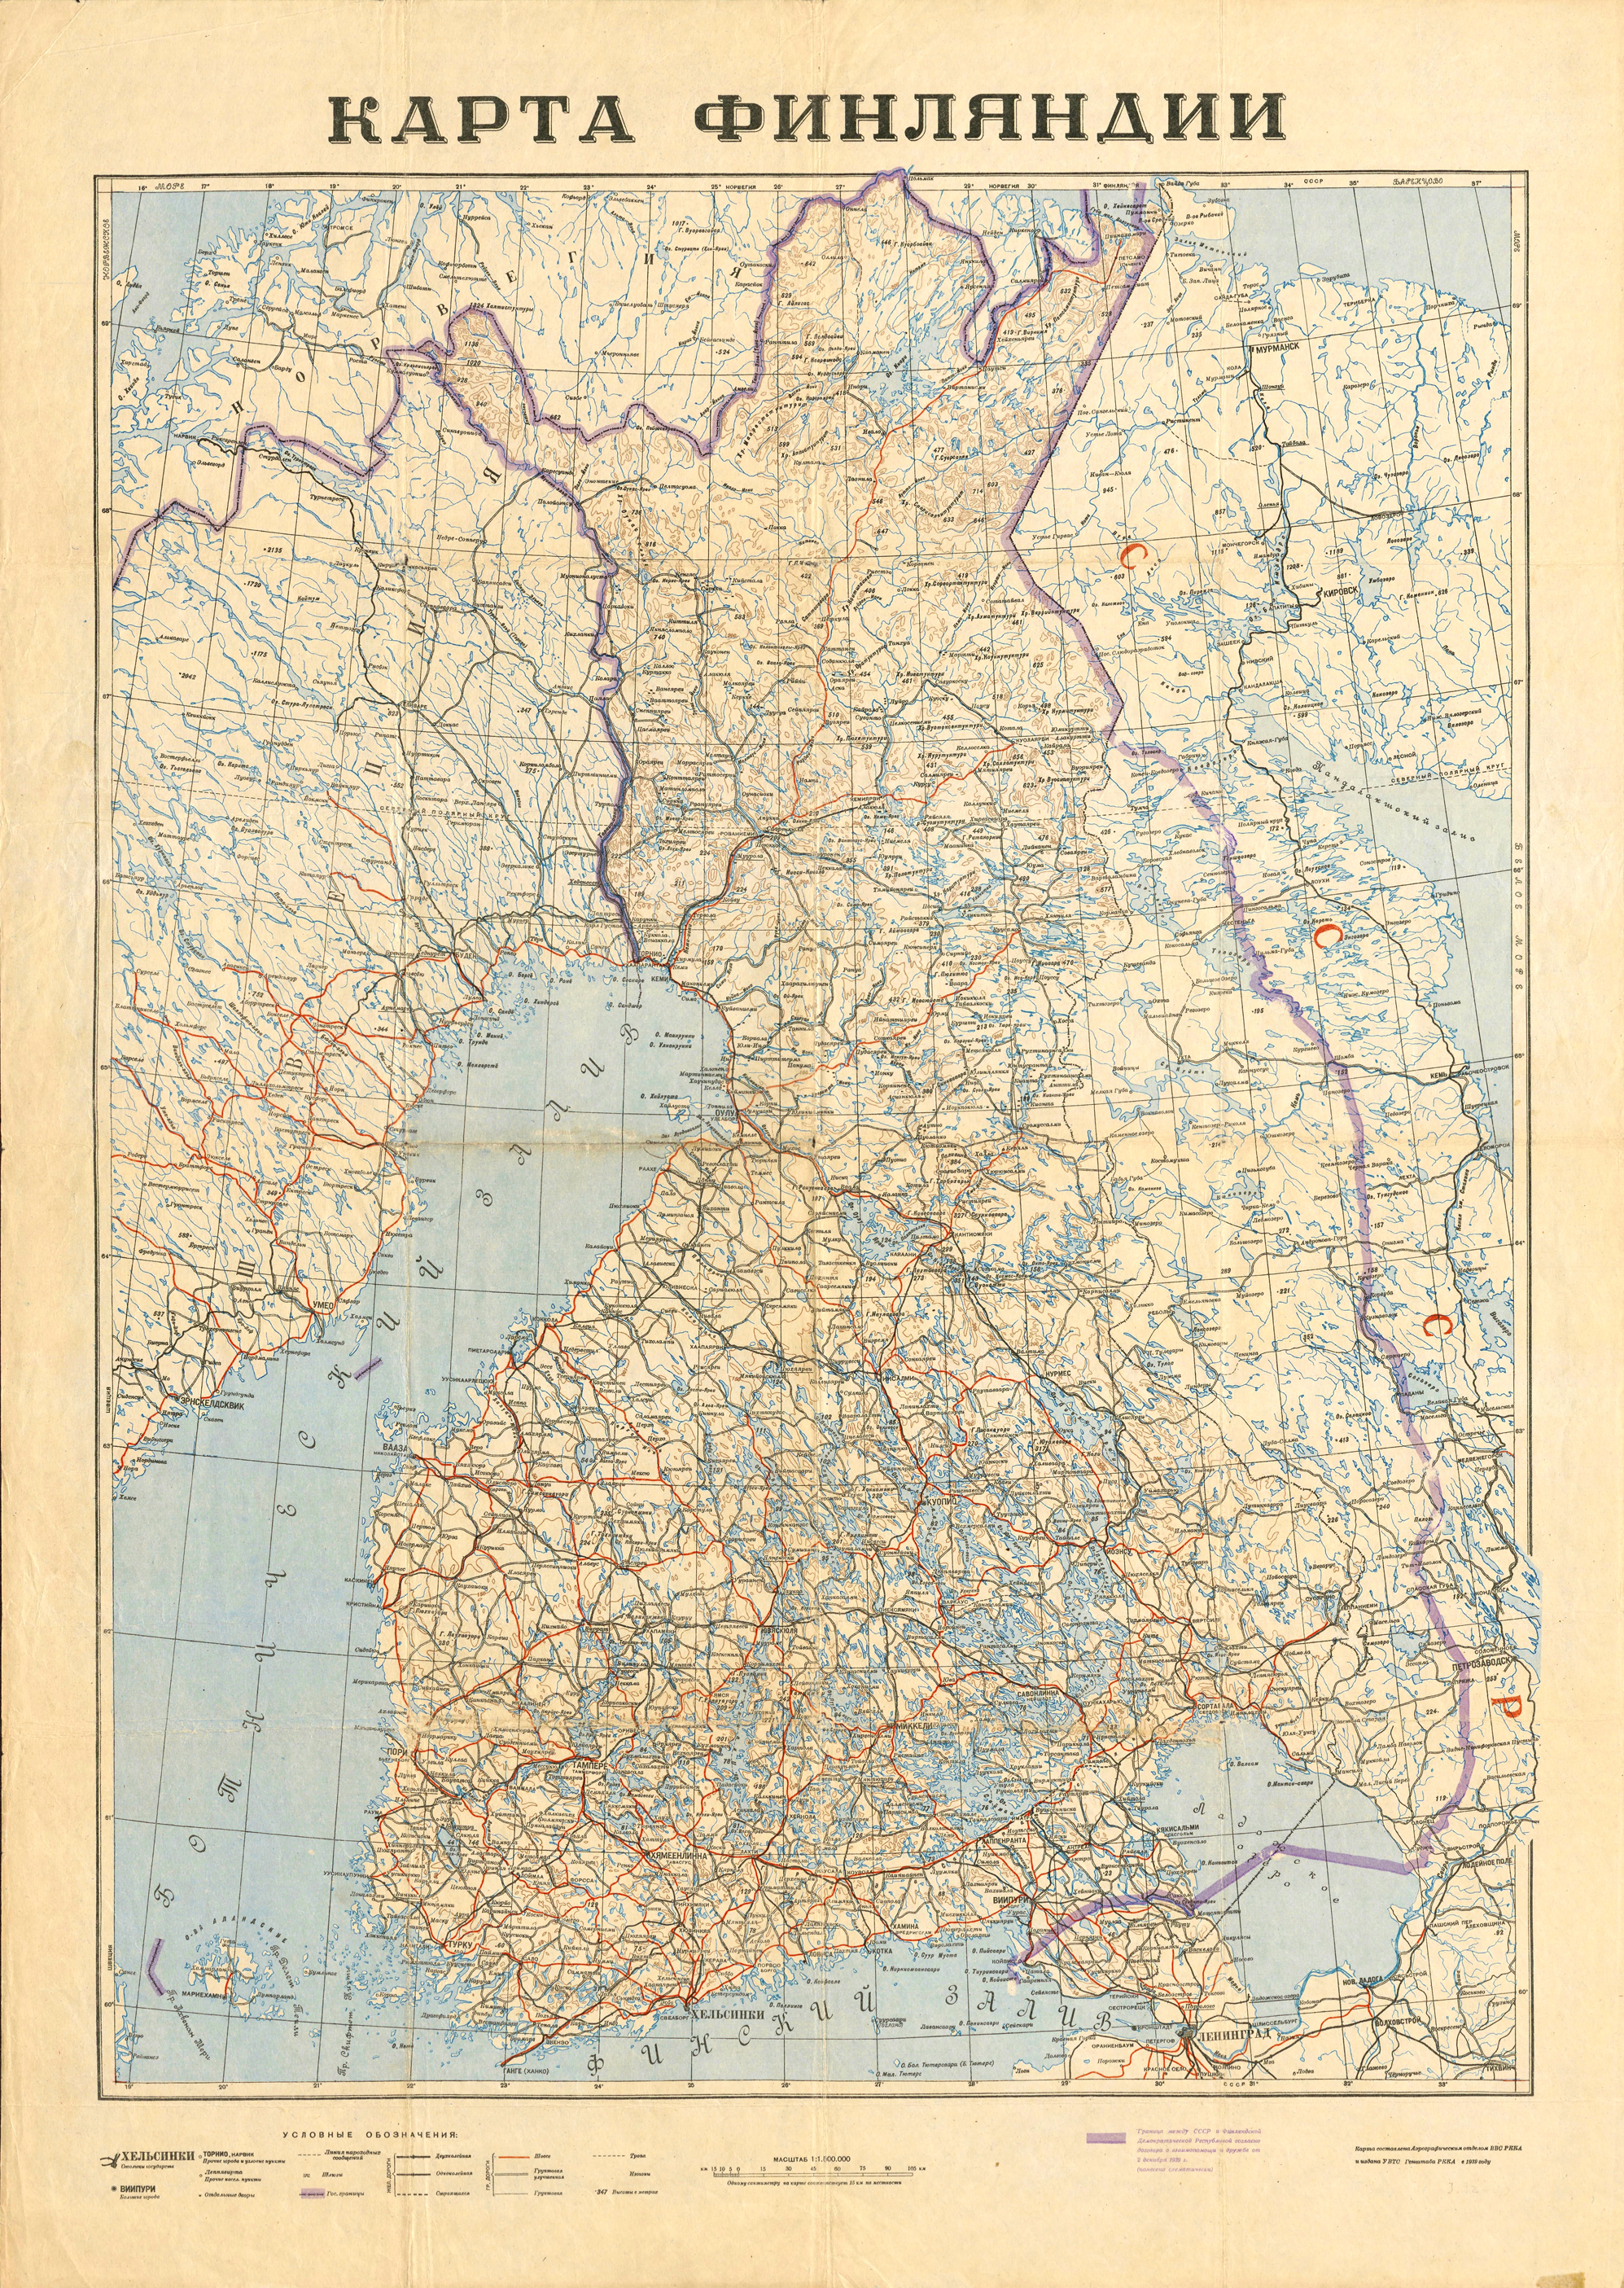 December 1939. Map of the Finnish Democratic Republic